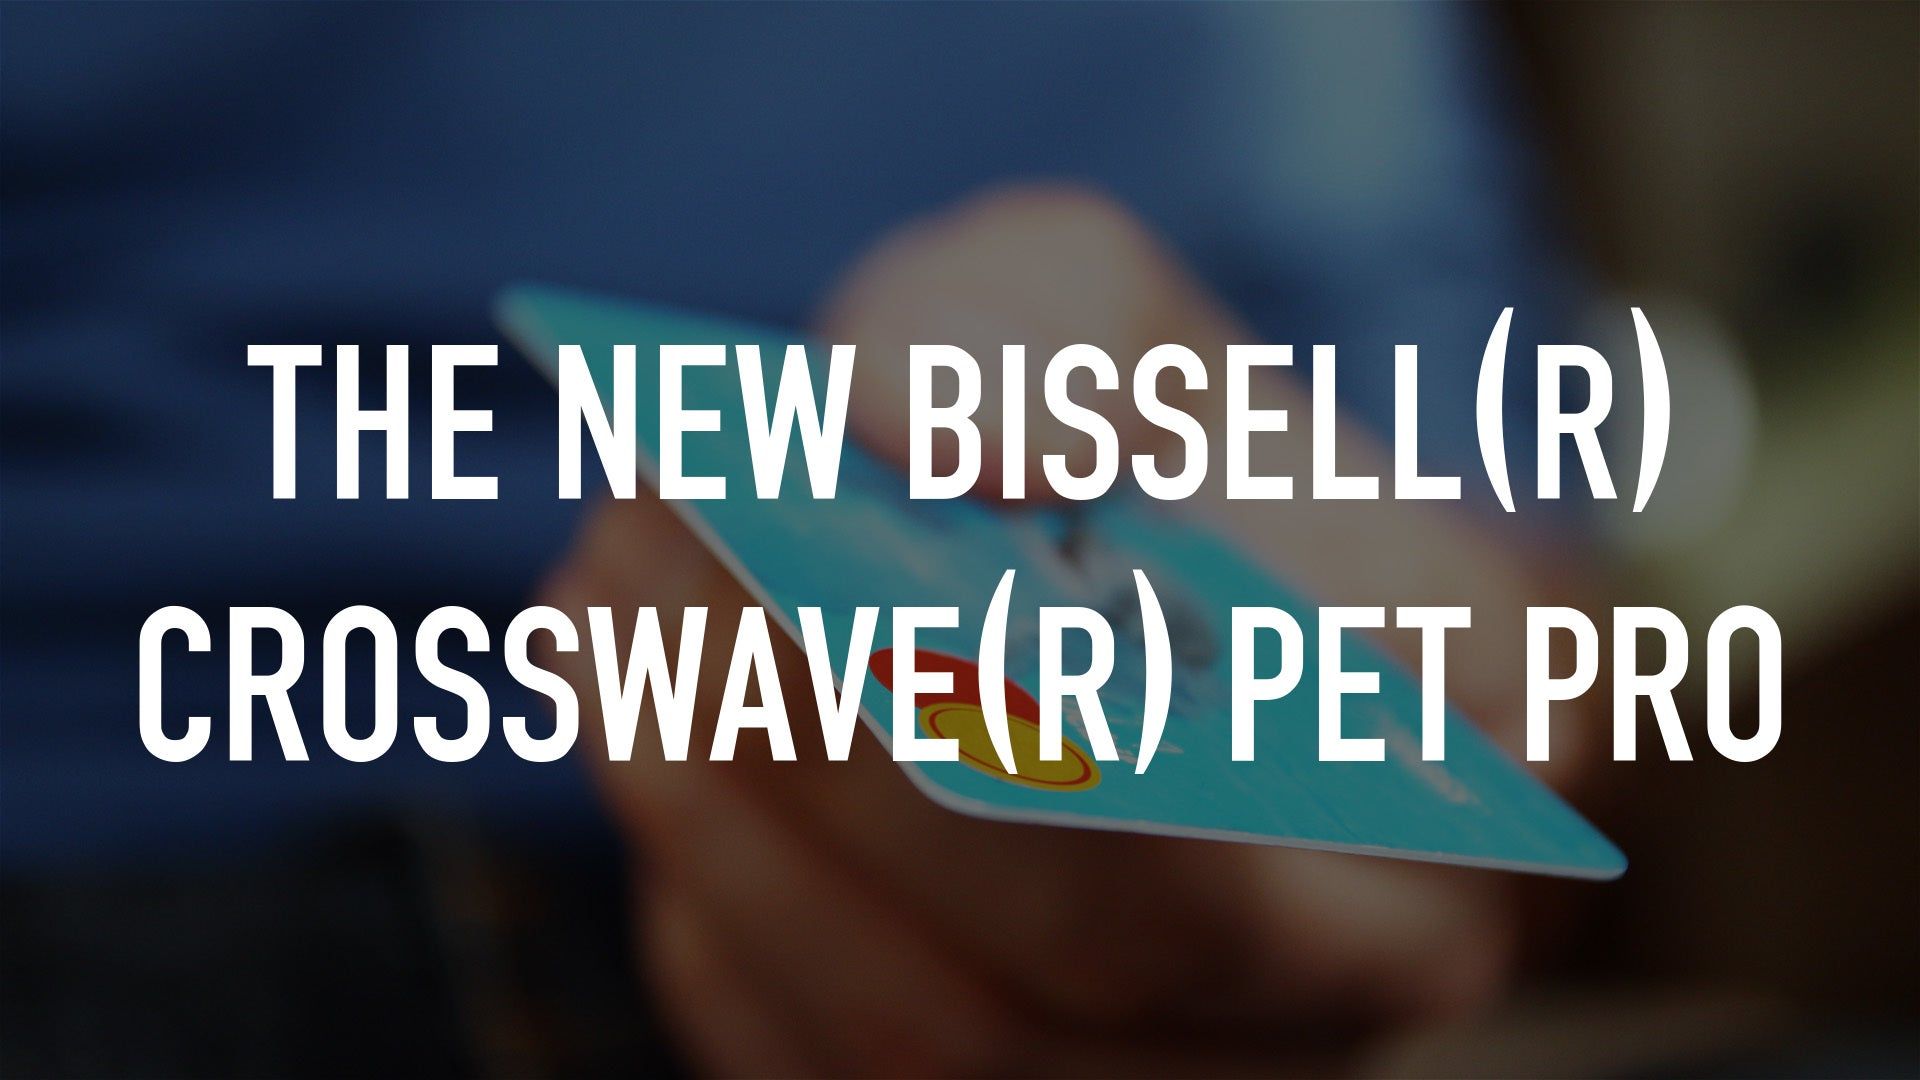 The New Bissell(R) CrossWave(R) Pet Pro